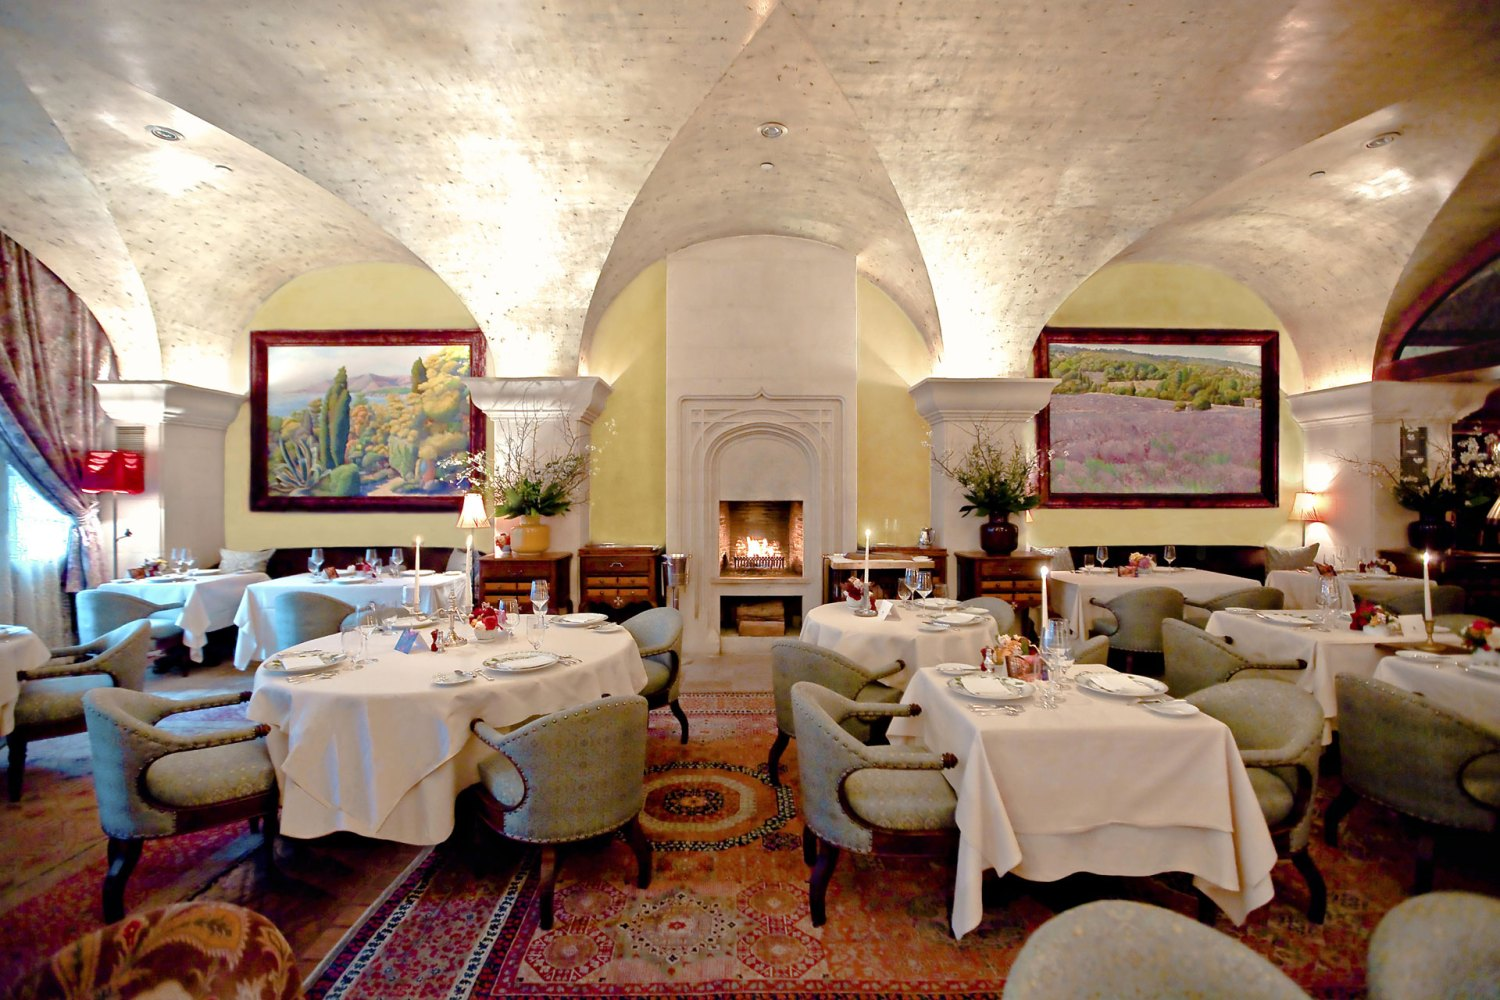 Bouley Main Dining Room (History - Bouley Restaurant at 163 Duane in the Mohawk Building)